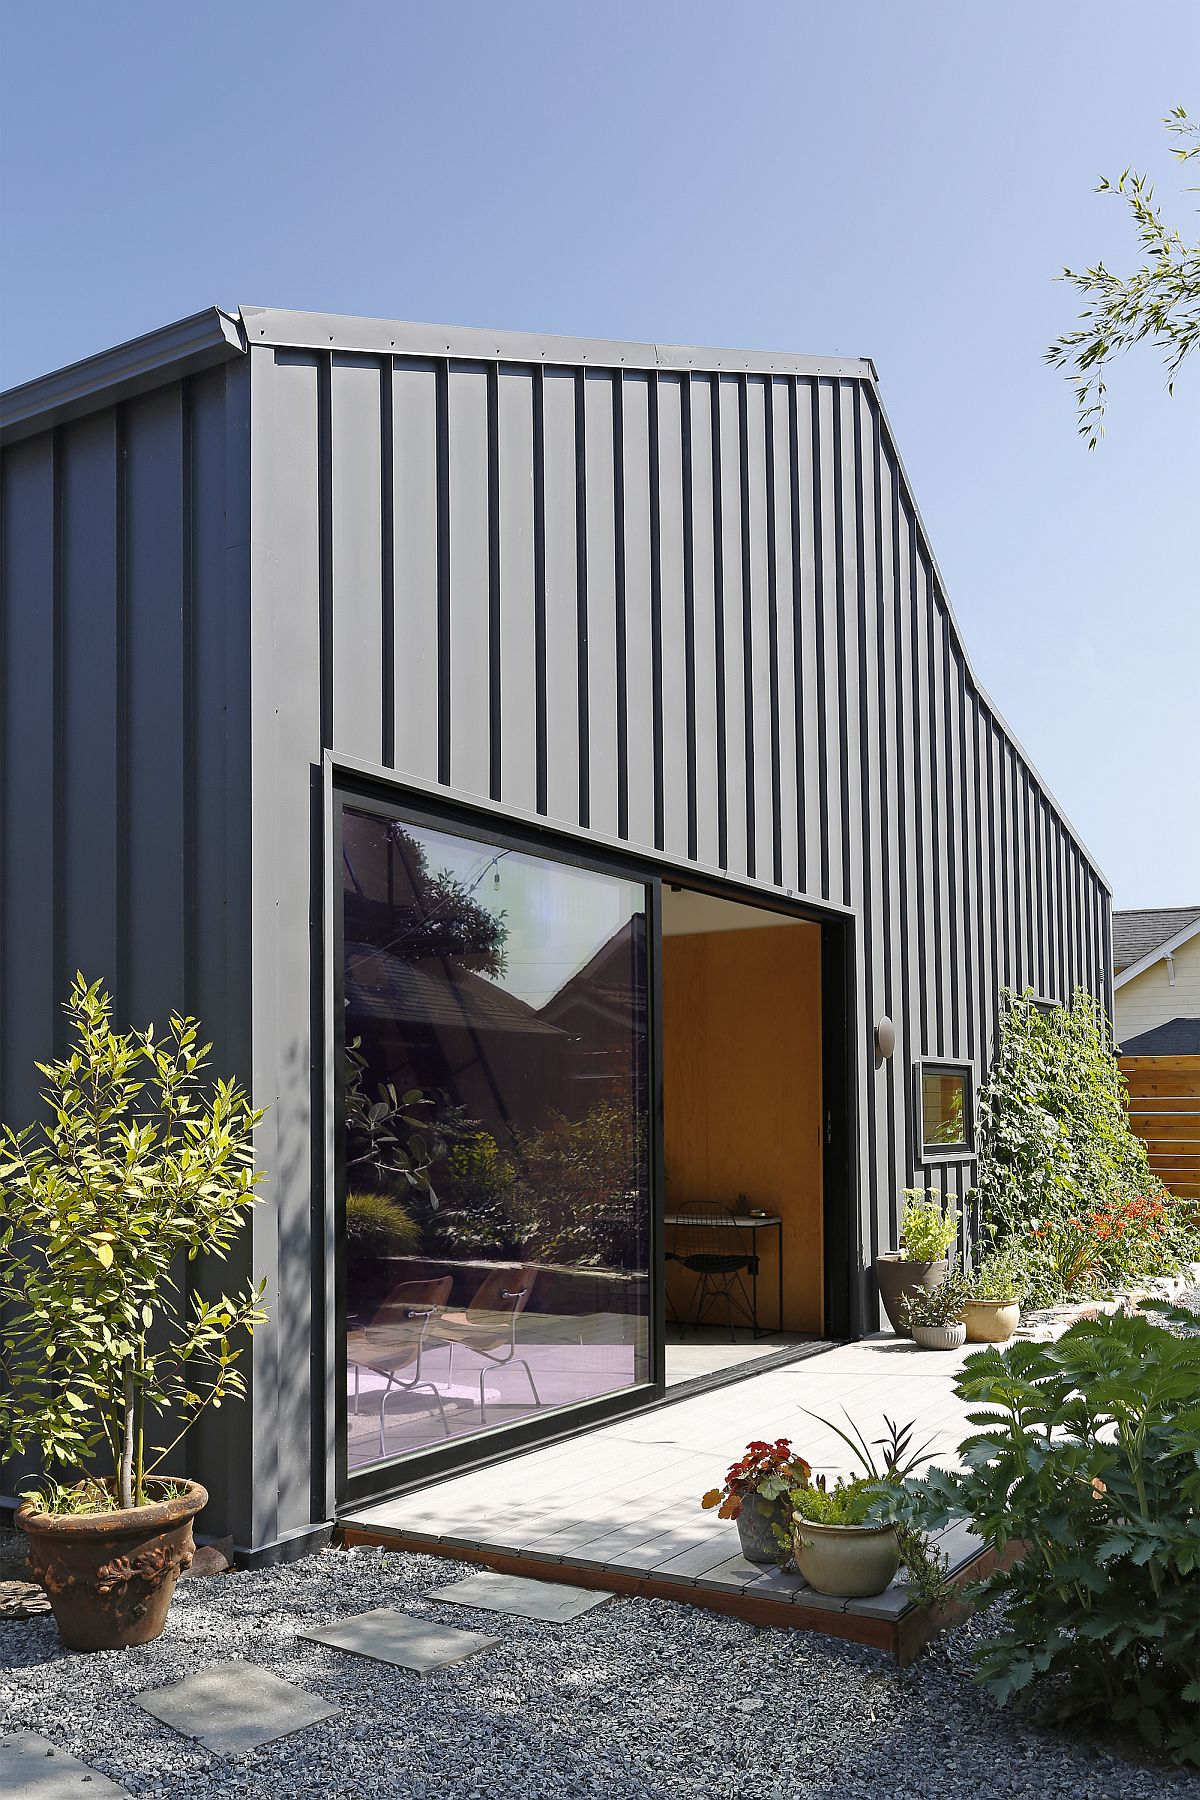 Overall design of the backyard house gives it a modern midcentury vibe